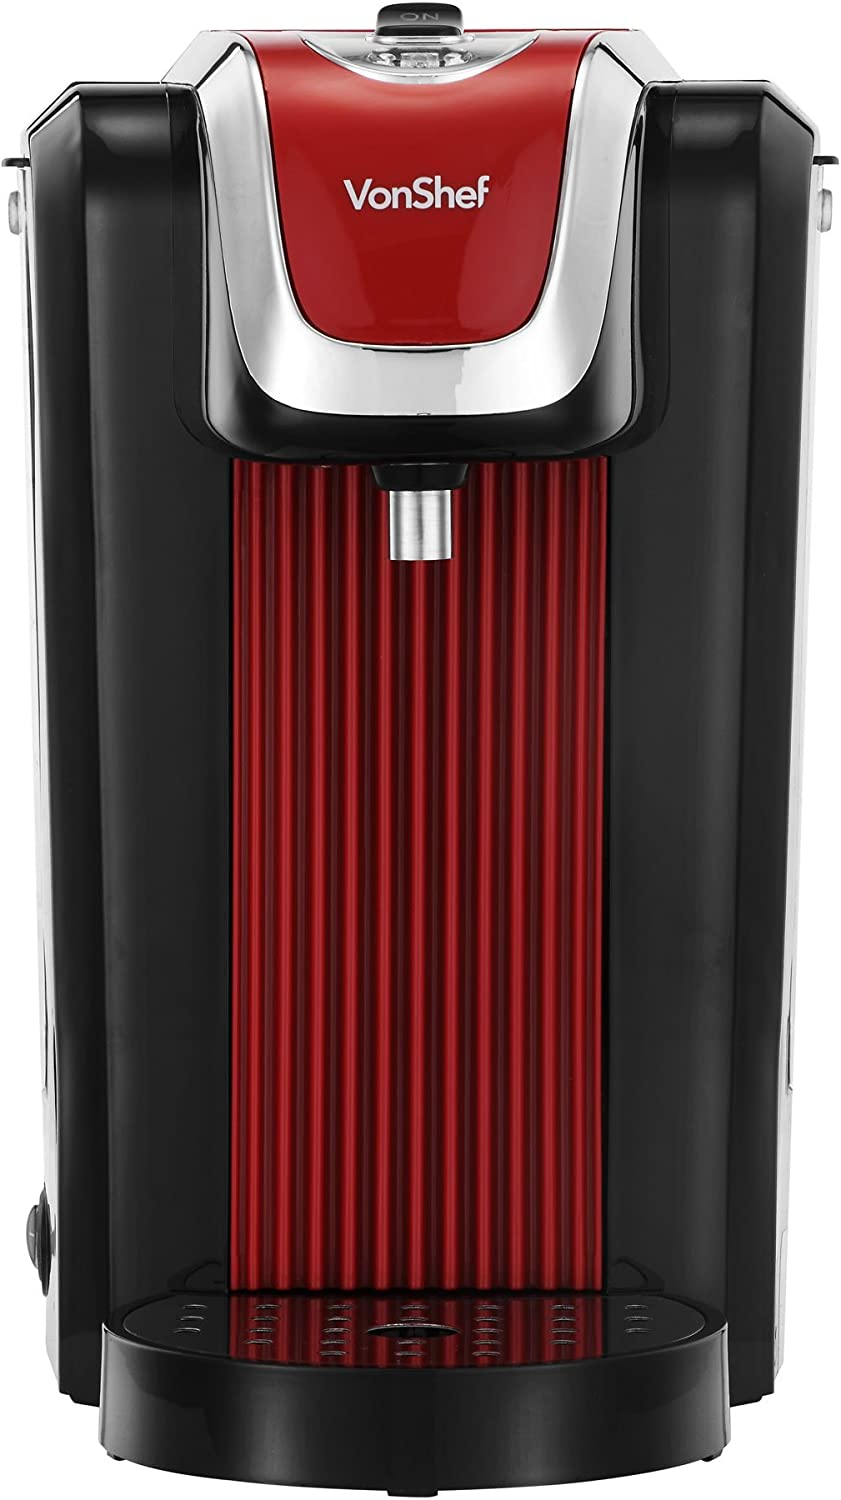 Drip Tray Maximum 2600W VonShef Hot Water Dispenser Instant Kettle//Catering Urn Black 2.5 Litre Capacity